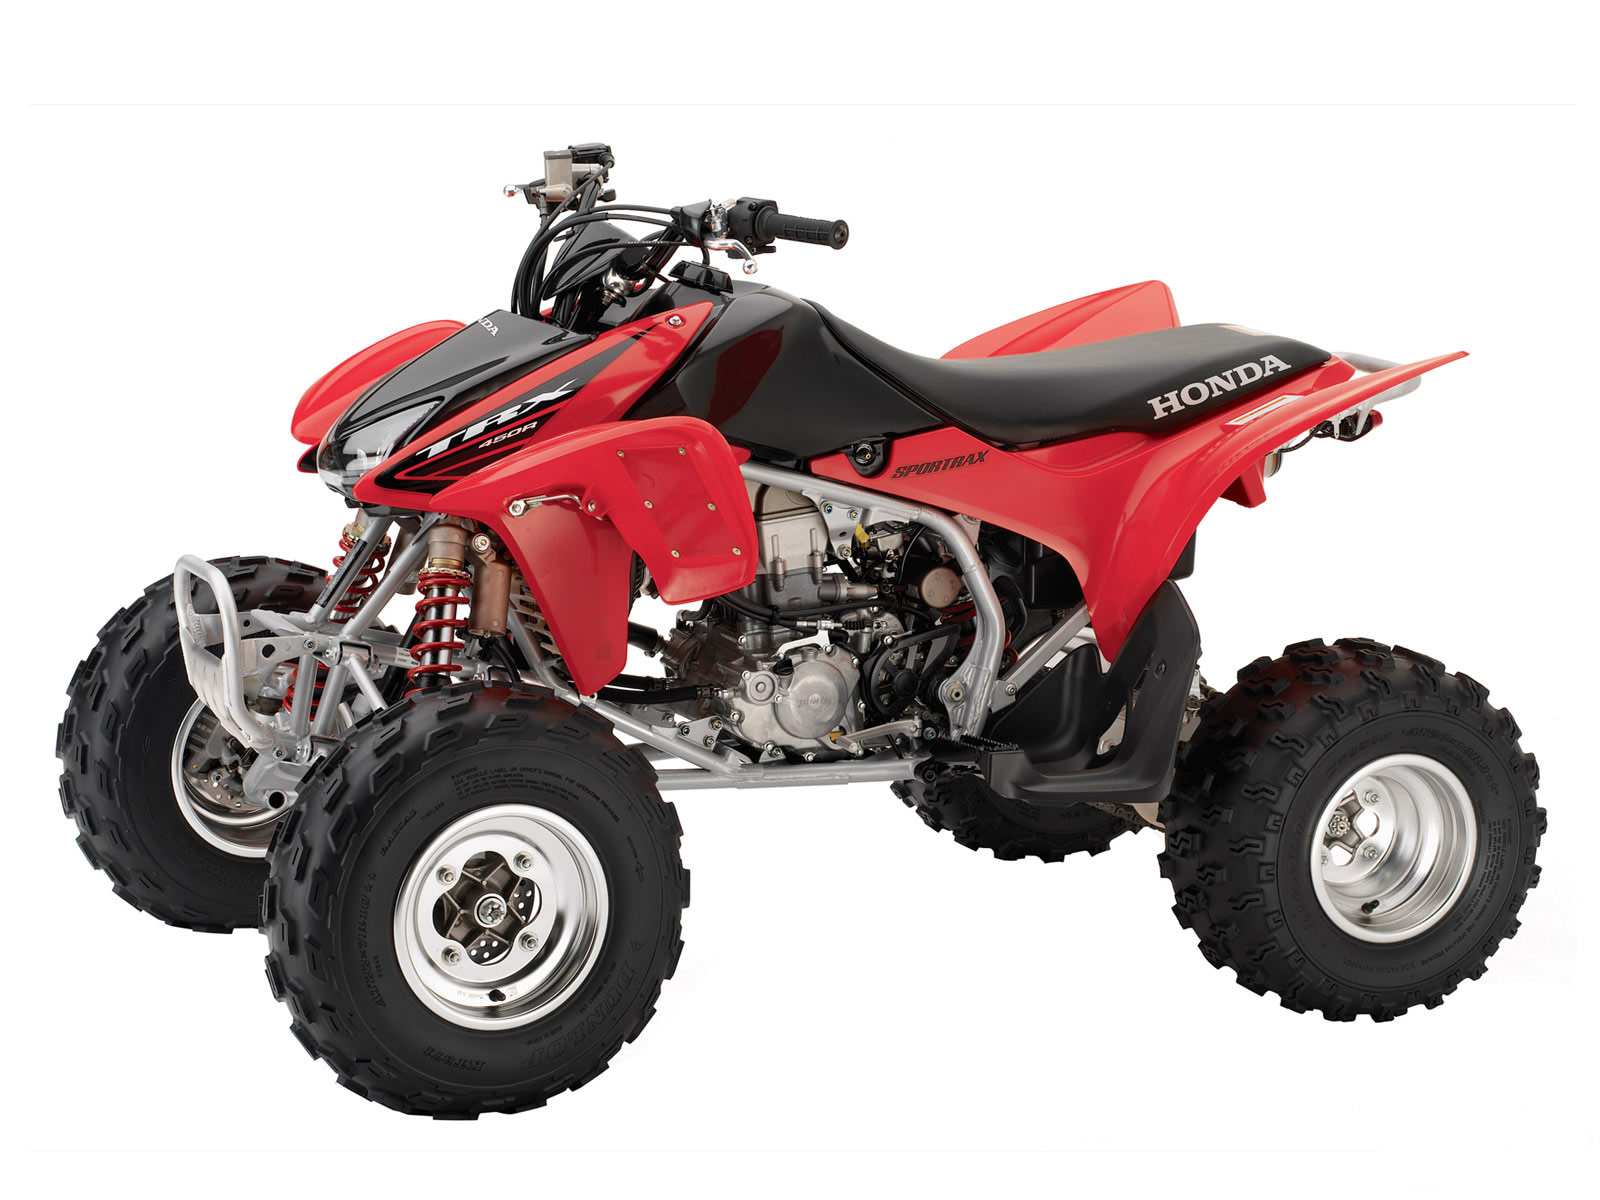 2005 HONDA TRX400R ATV wallpaper 1600x1200